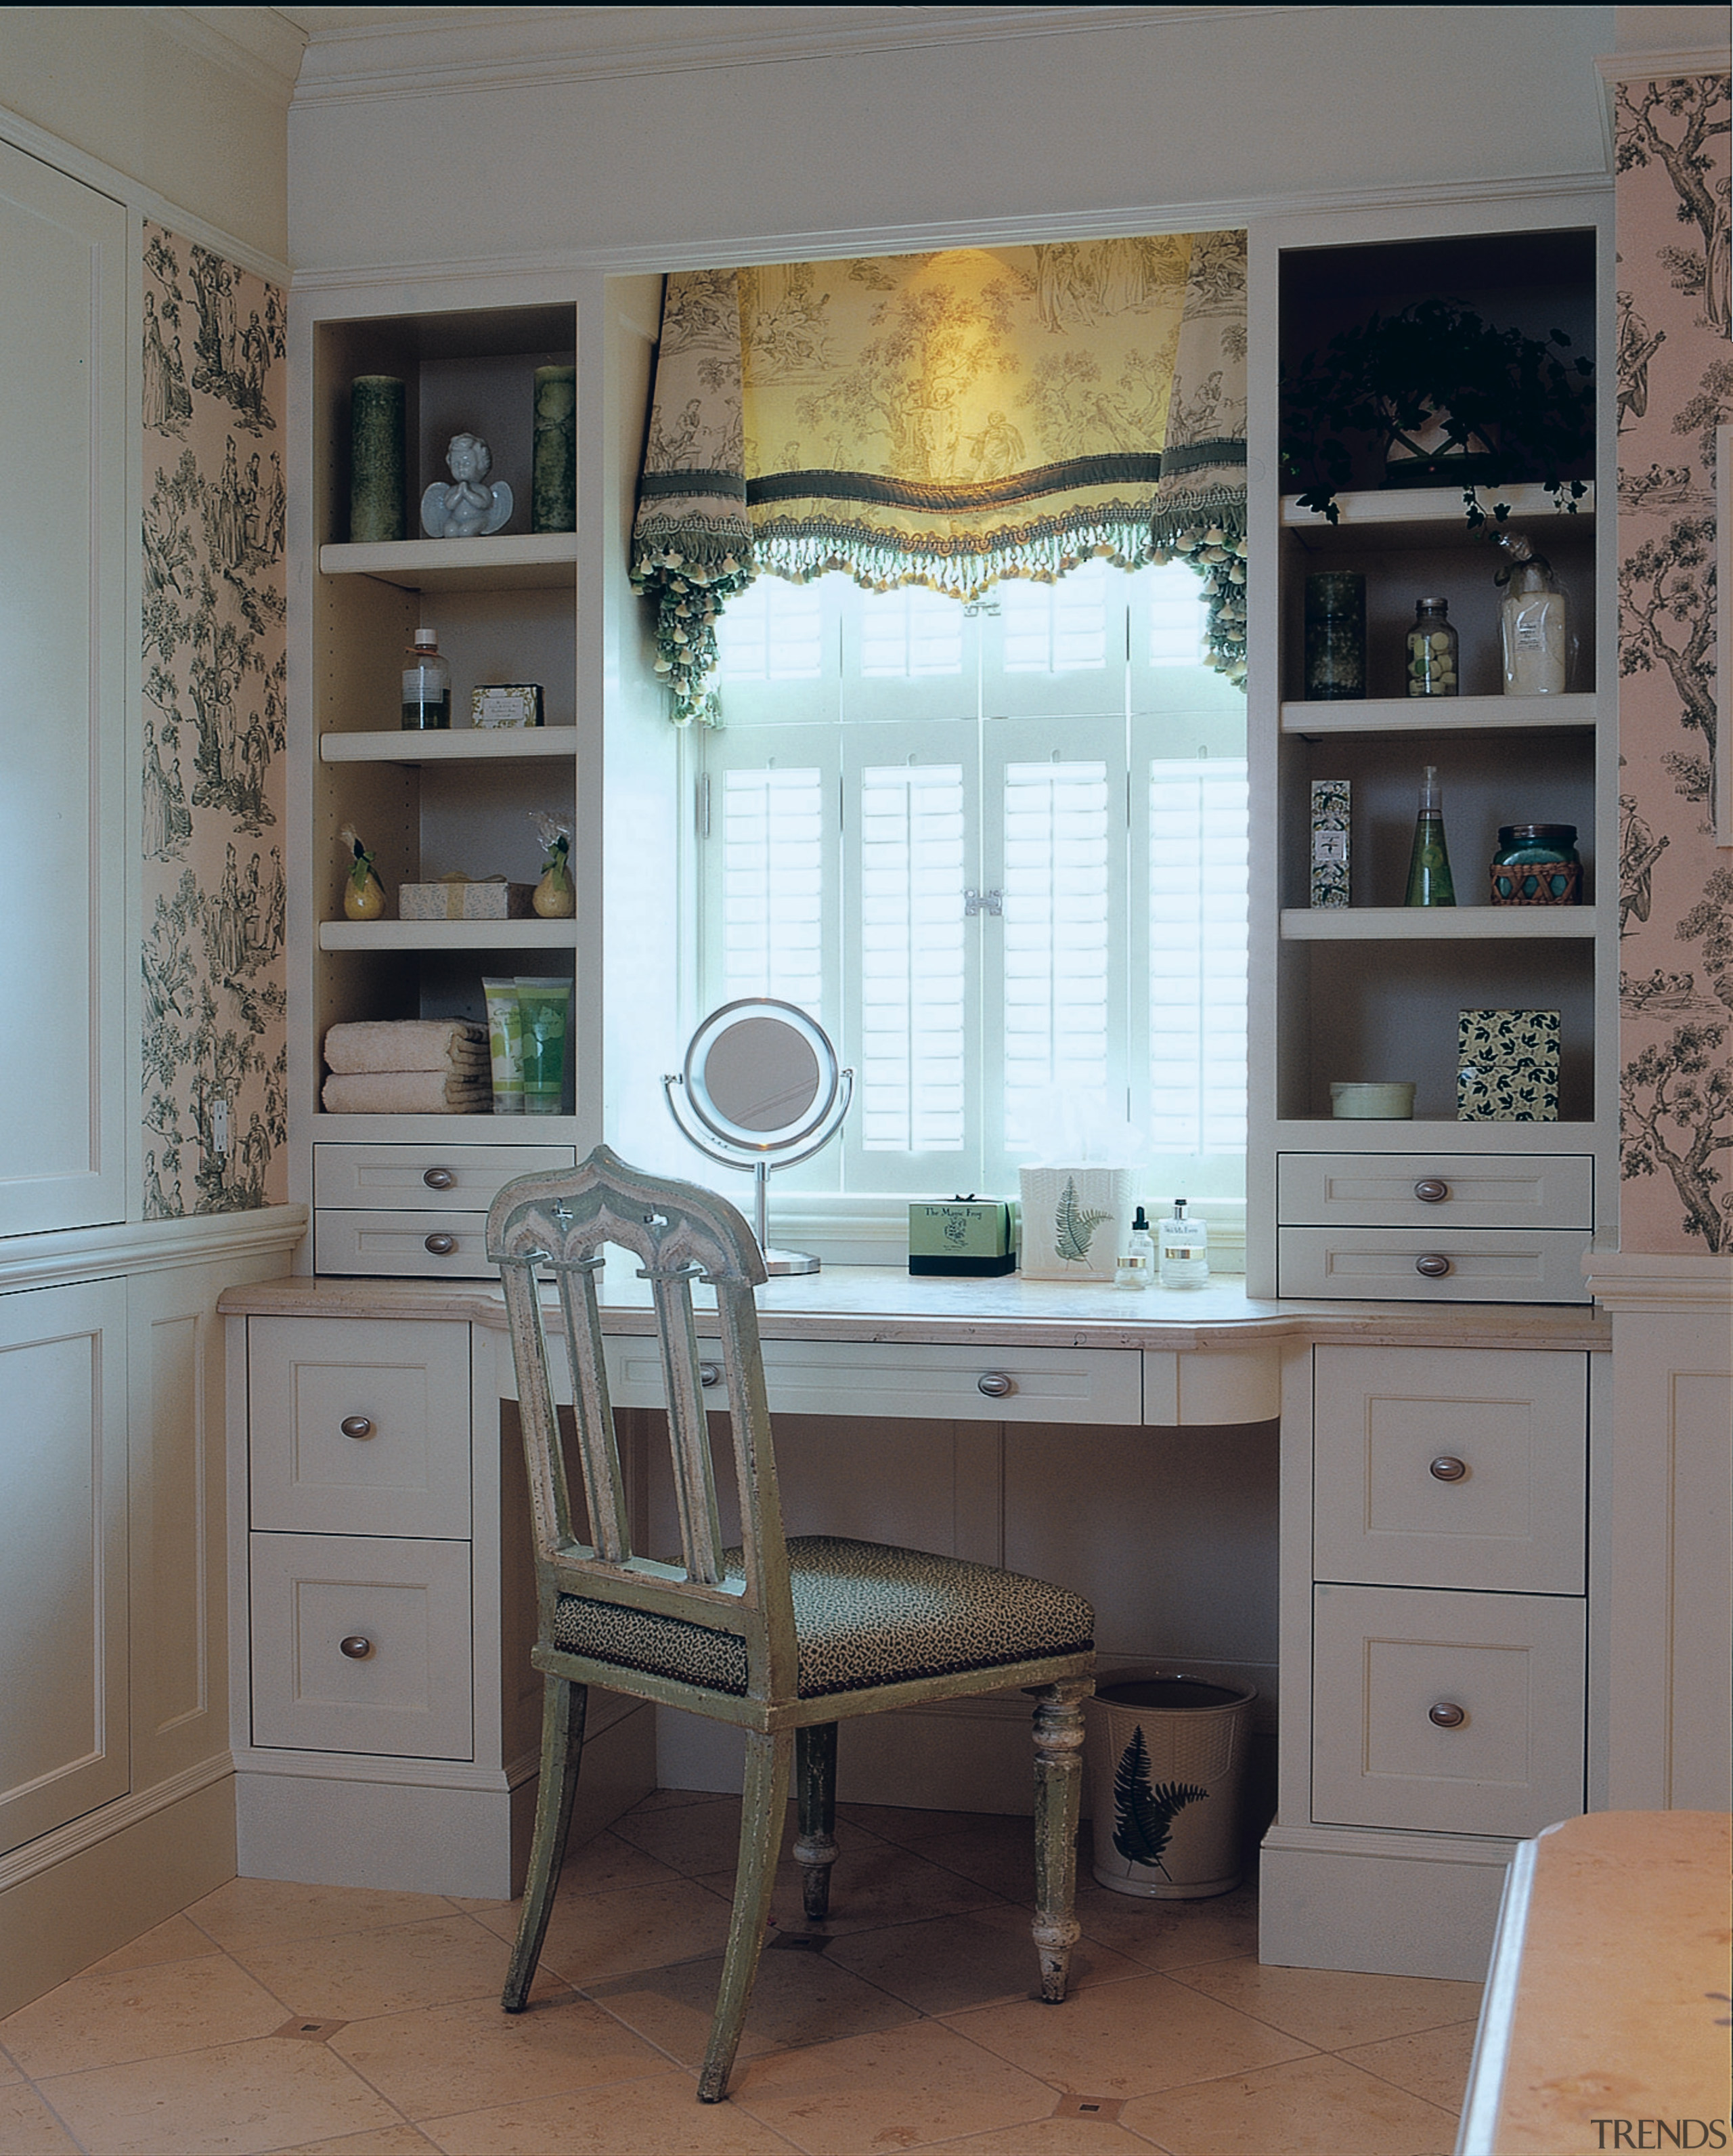 View of the cabinetry in this bathroom - cabinetry, chest of drawers, countertop, curtain, desk, floor, furniture, home, interior design, kitchen, room, shelf, shelving, table, wall, window, window covering, window treatment, gray